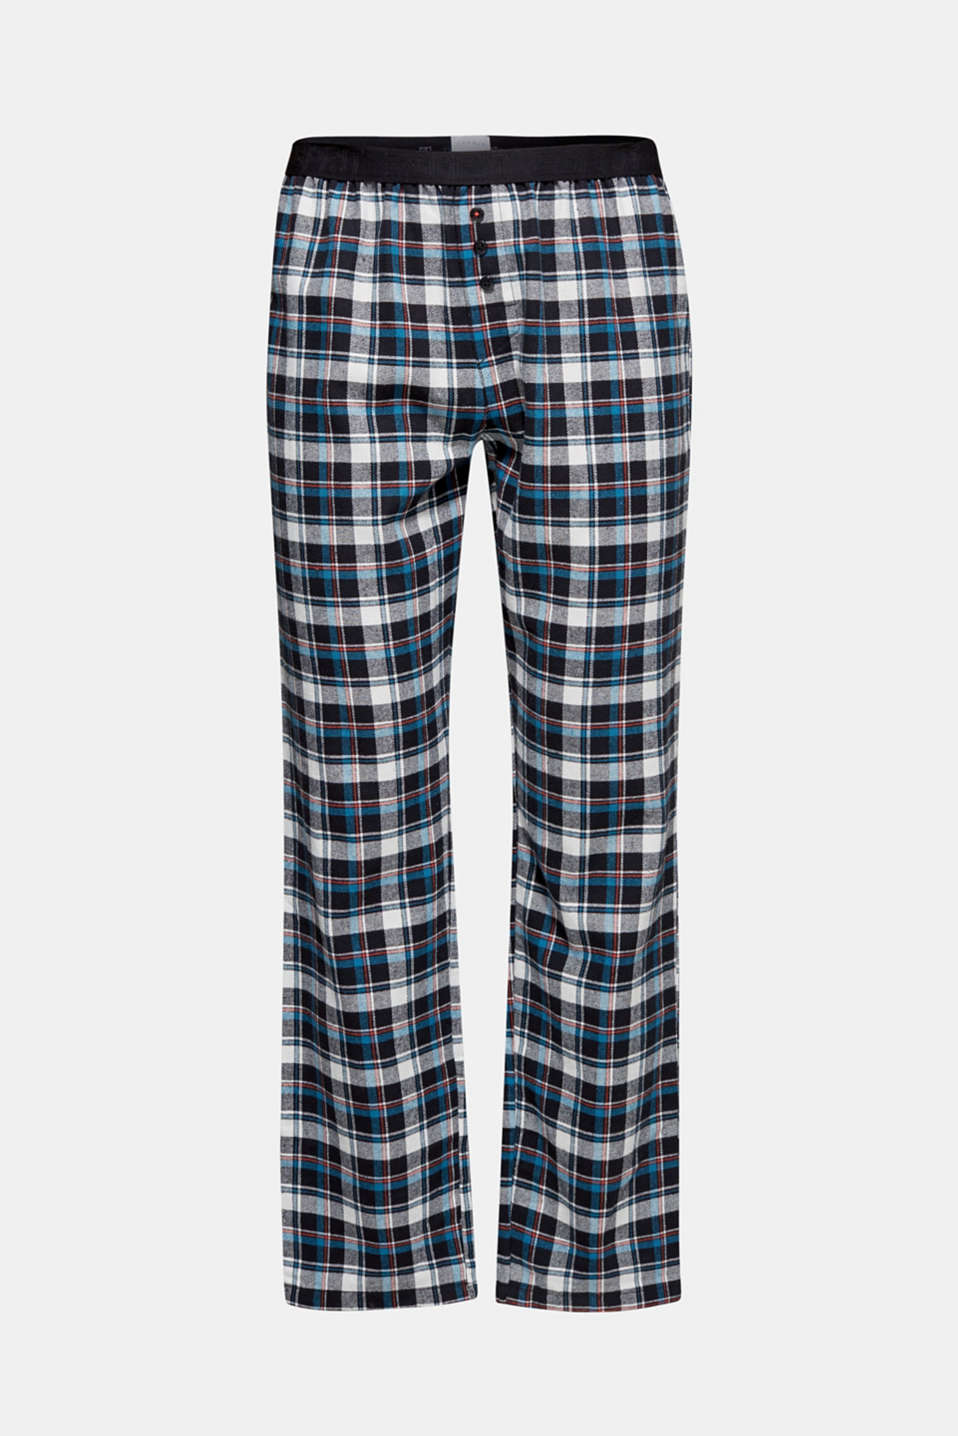 Flannel trousers with checks, 100% cotton, BLACK, detail image number 4